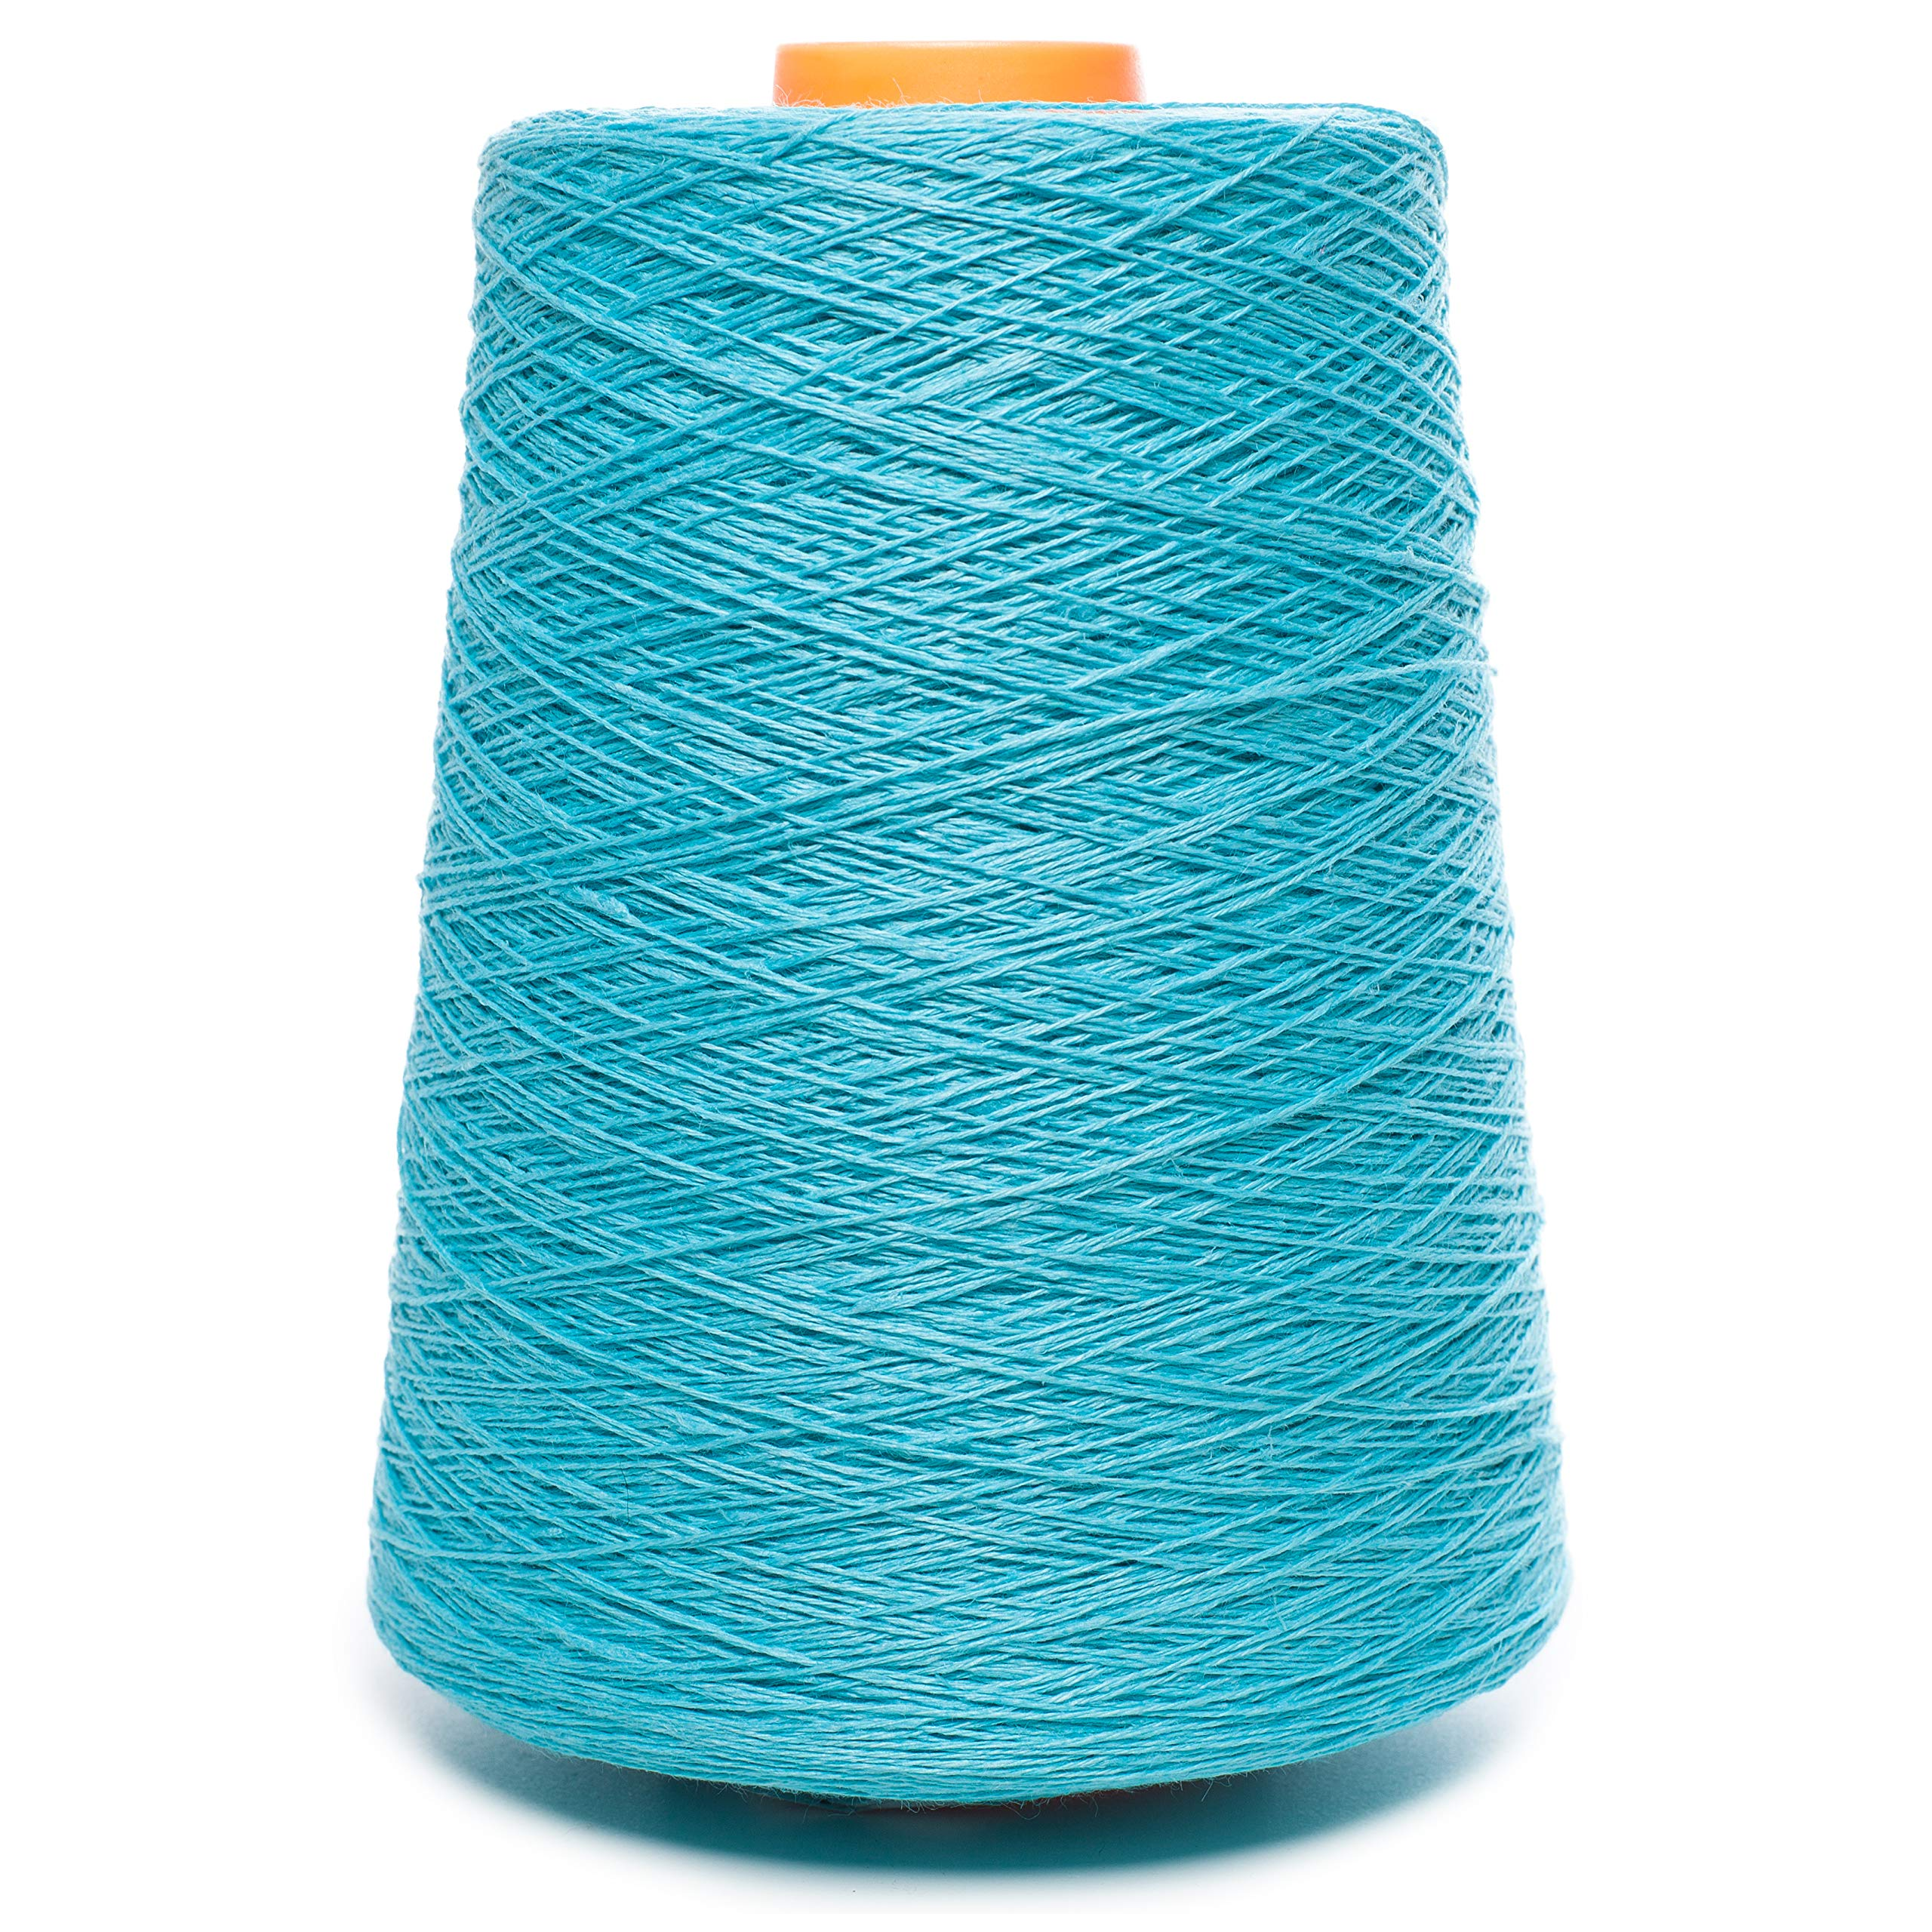 Linen Yarn Cone - 100% Flax Linen - 1 LBS - Turquoise Bright Blue Yarn - 3 PLY - Sewing Weaving Crochet Embroidering - 3.000 Yard